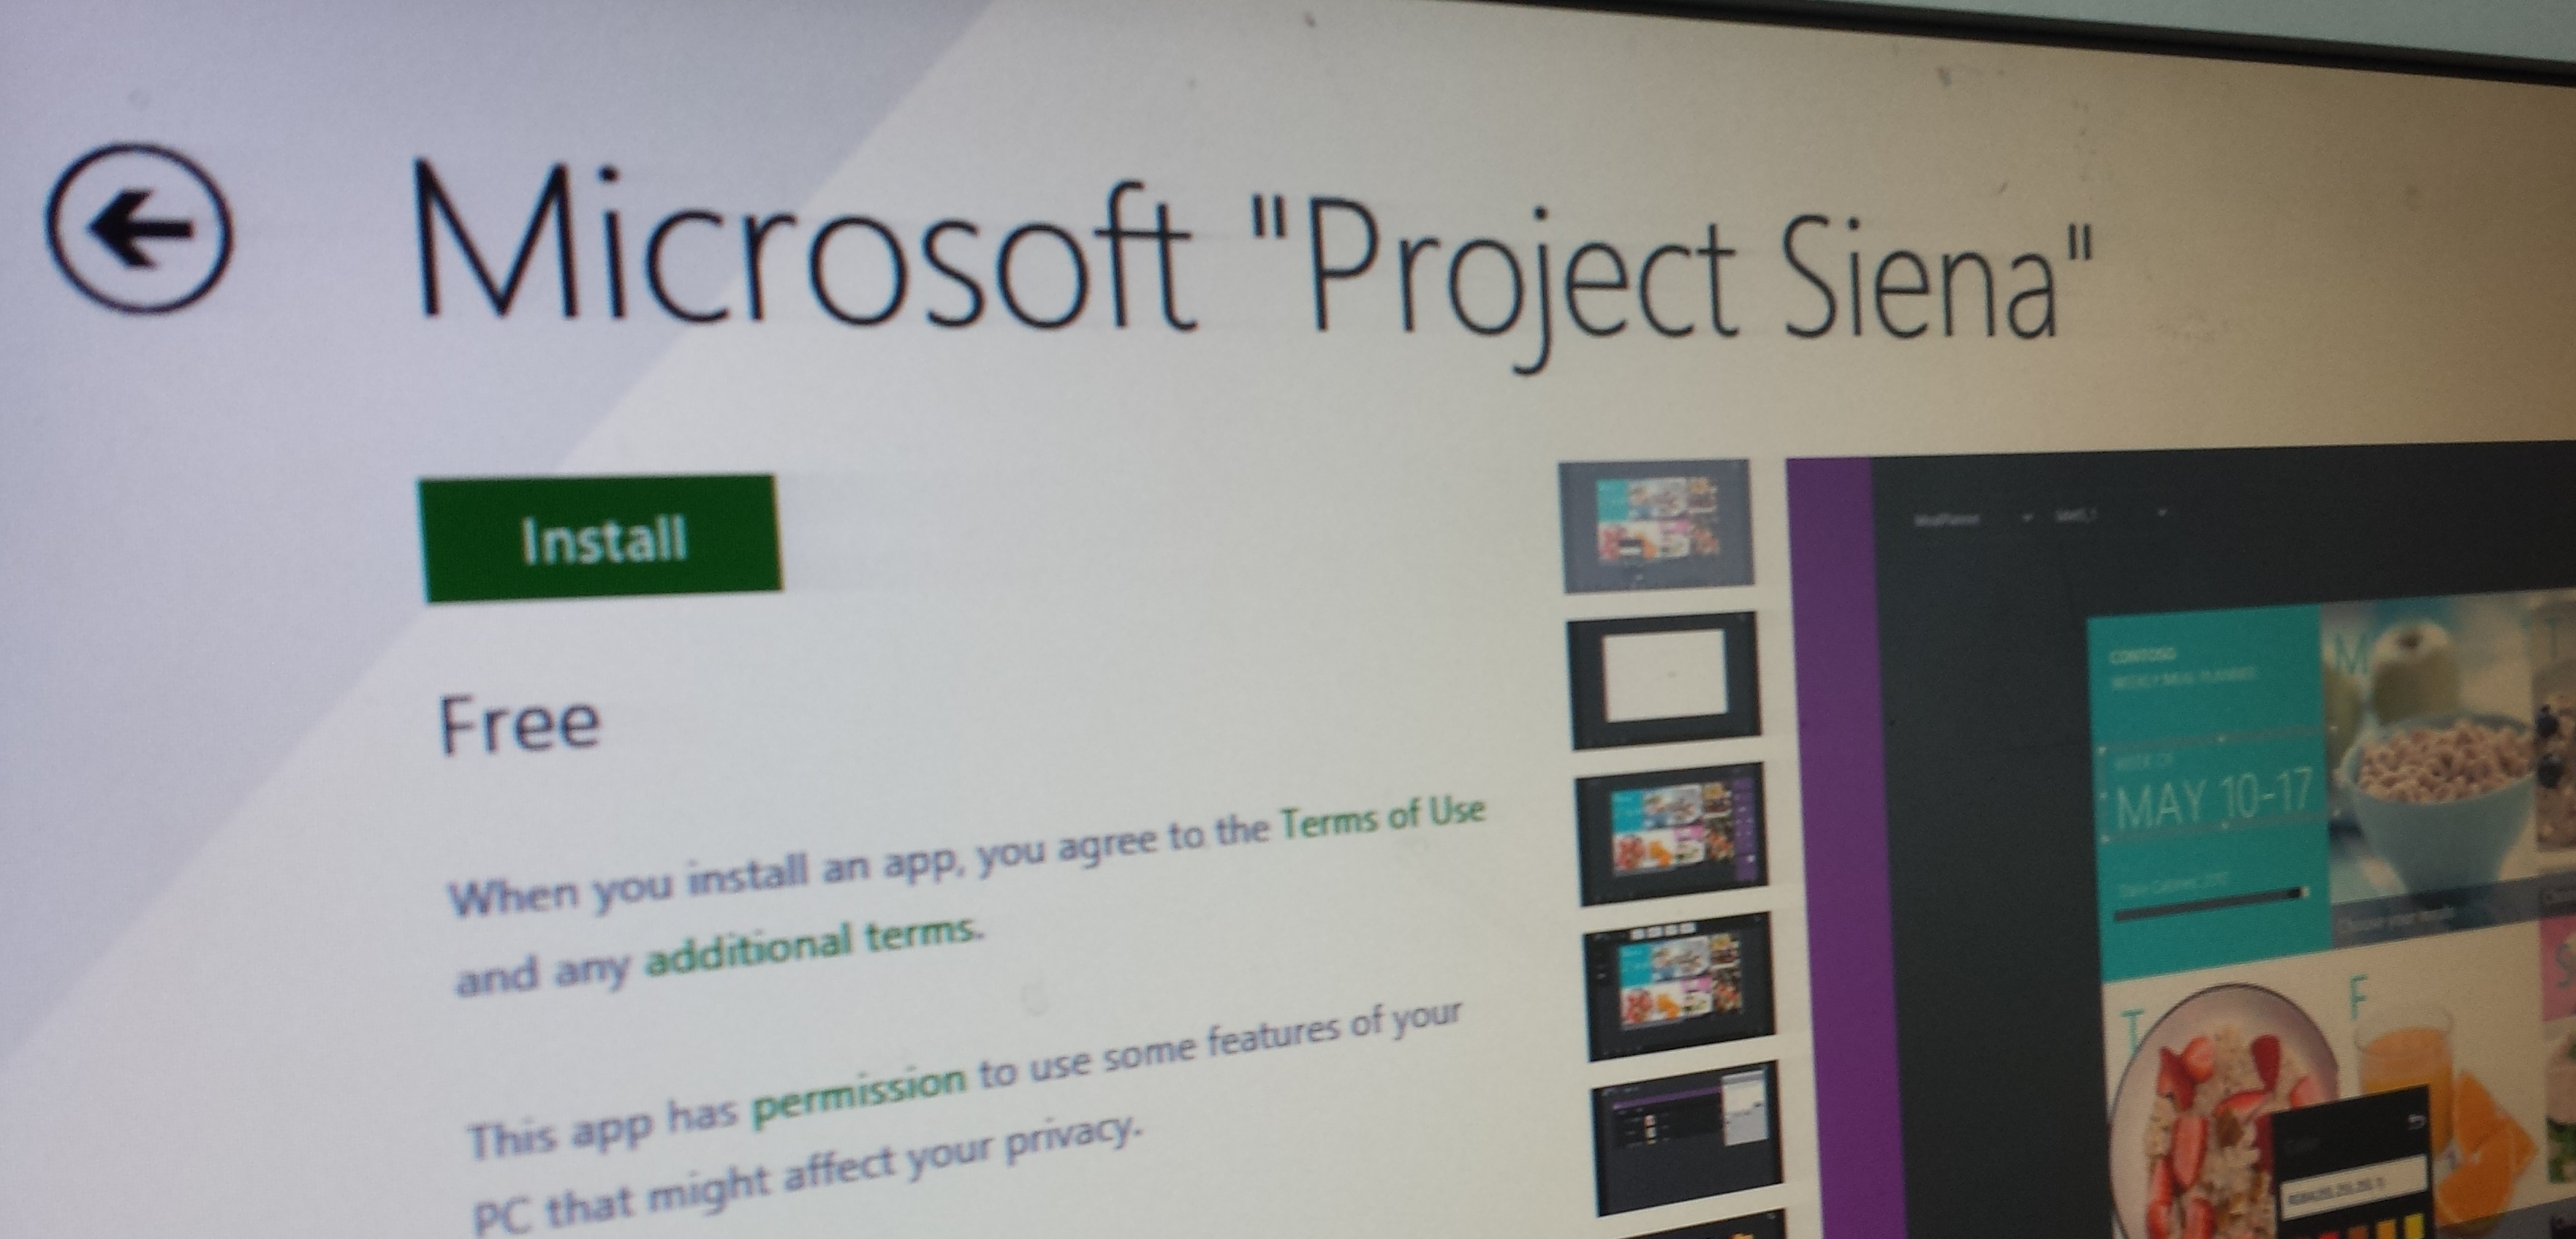 Microsoft Project Siena: An app for anyone to create Windows 8.1 apps, no coding required